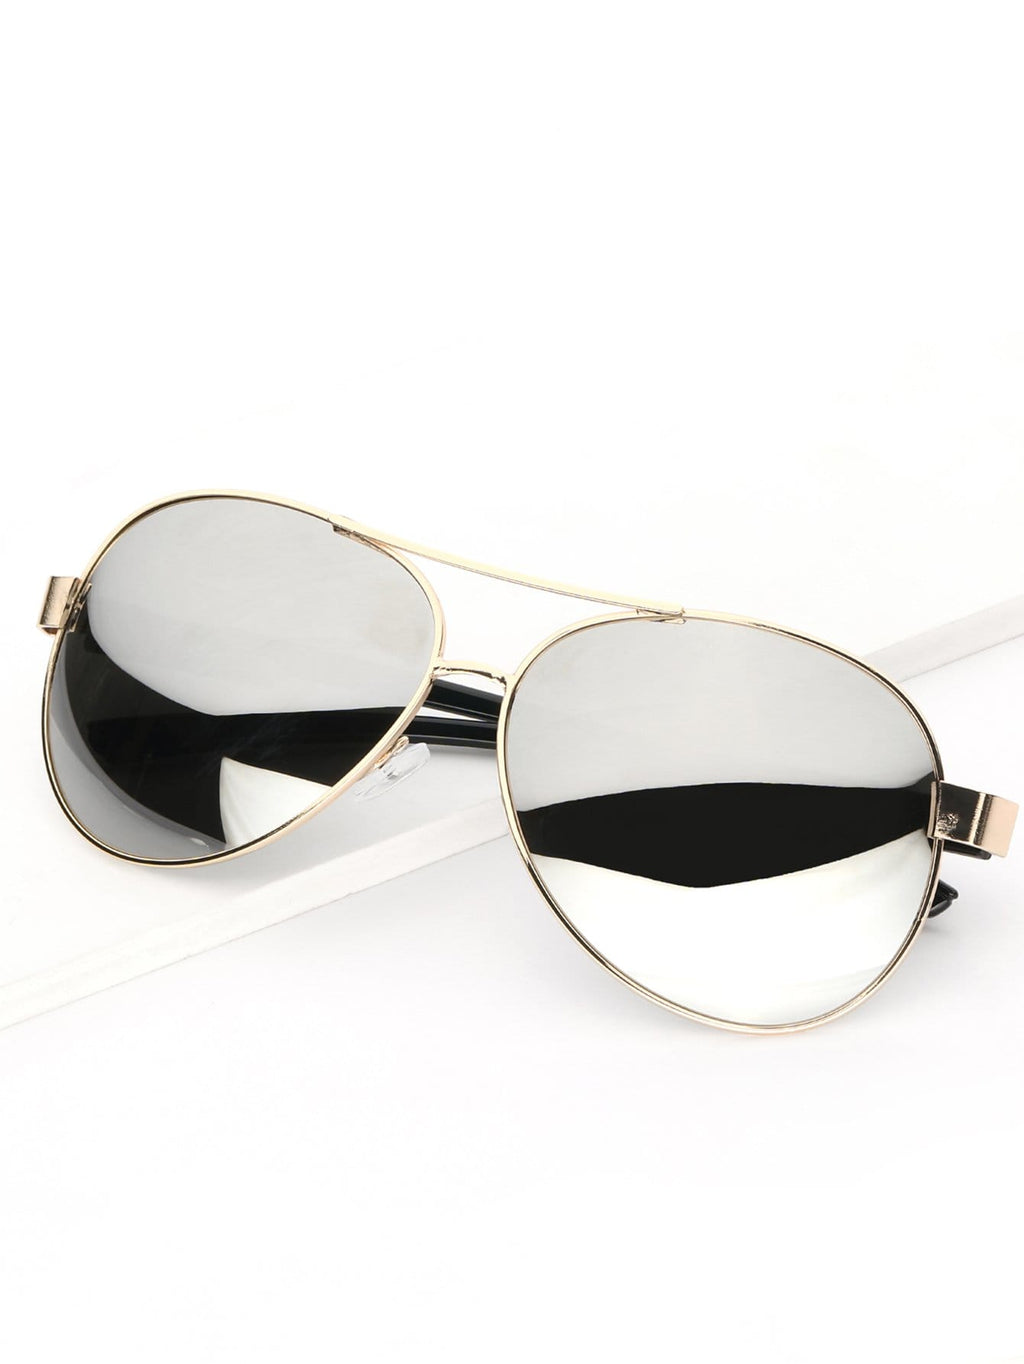 Driving Sunglasses - Men Metal Frame Mirror Lens Sunglasses